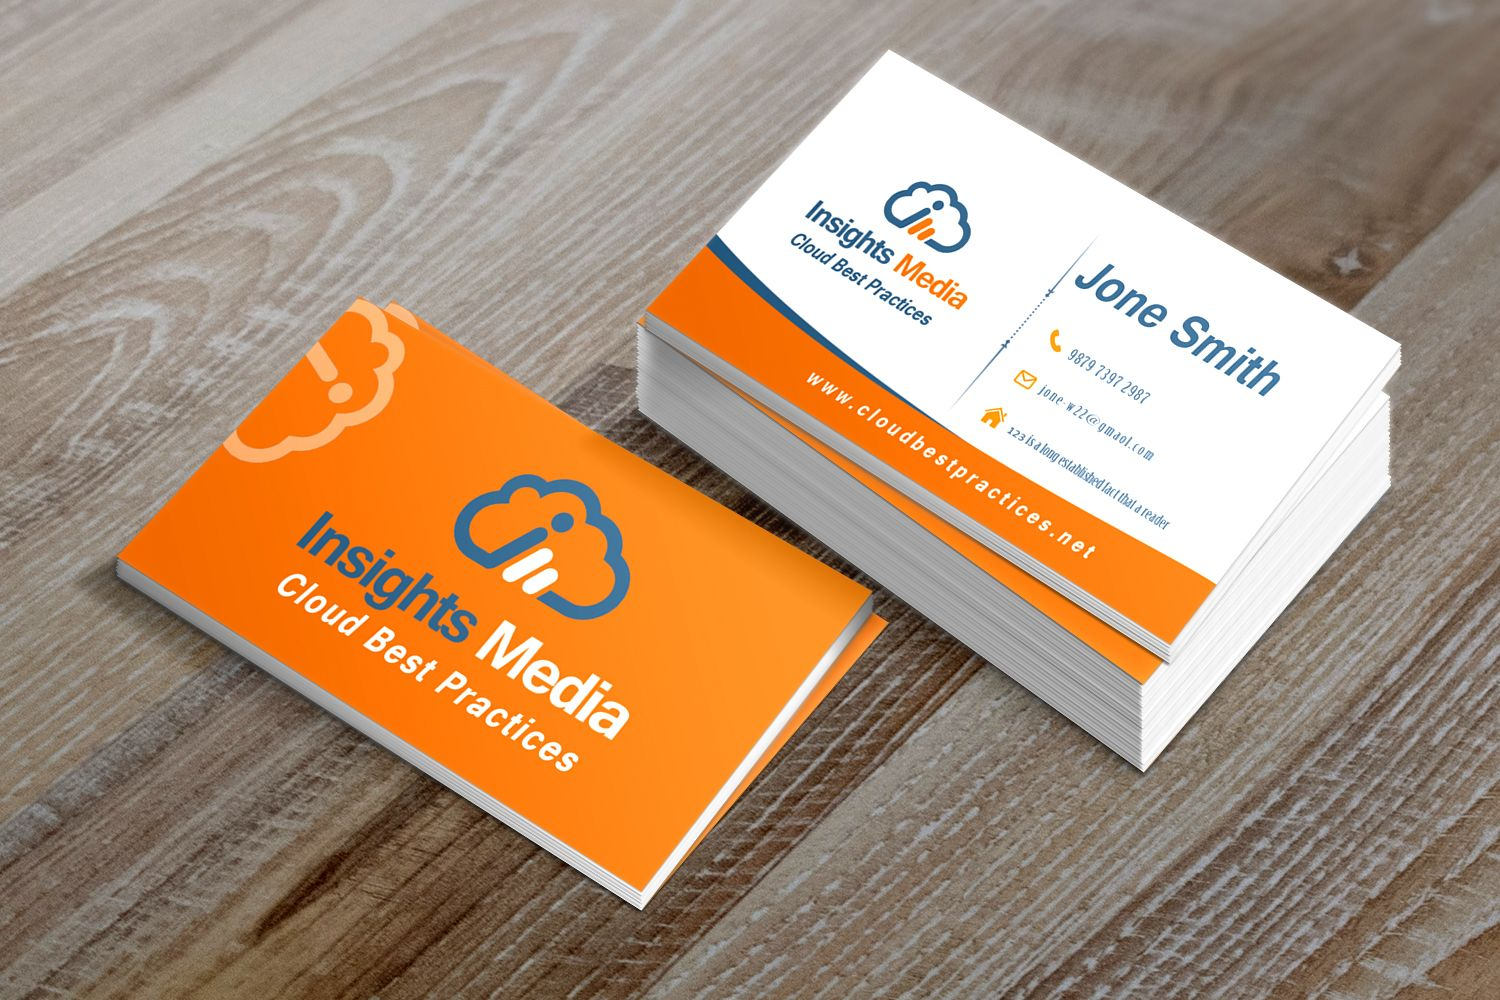 Pin by Doaa.M Designer on business card designs | Pinterest ...